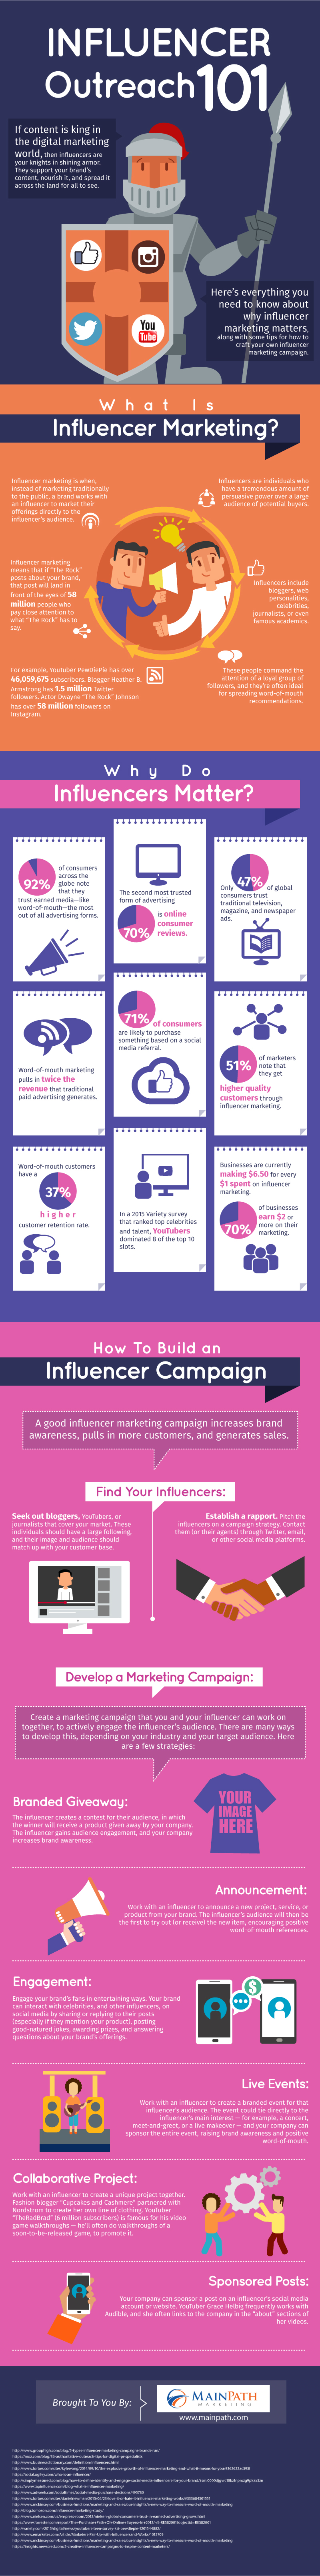 guide to influencer marketing infographic